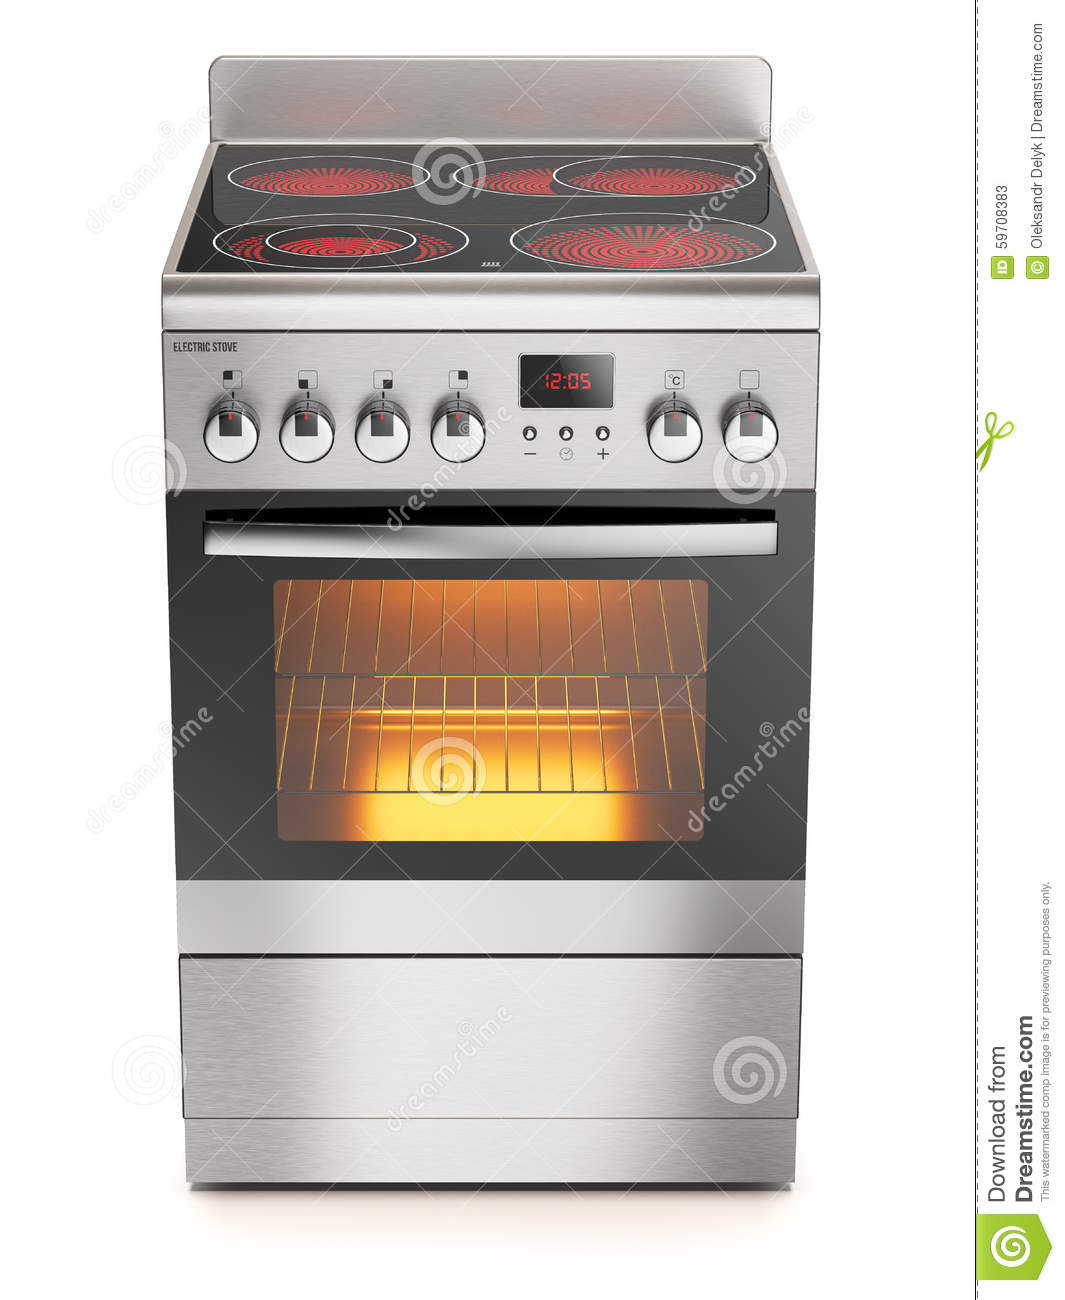 Kitchen Electric : Kitchen Electric Stove Stock Illustration - Image: 59708383